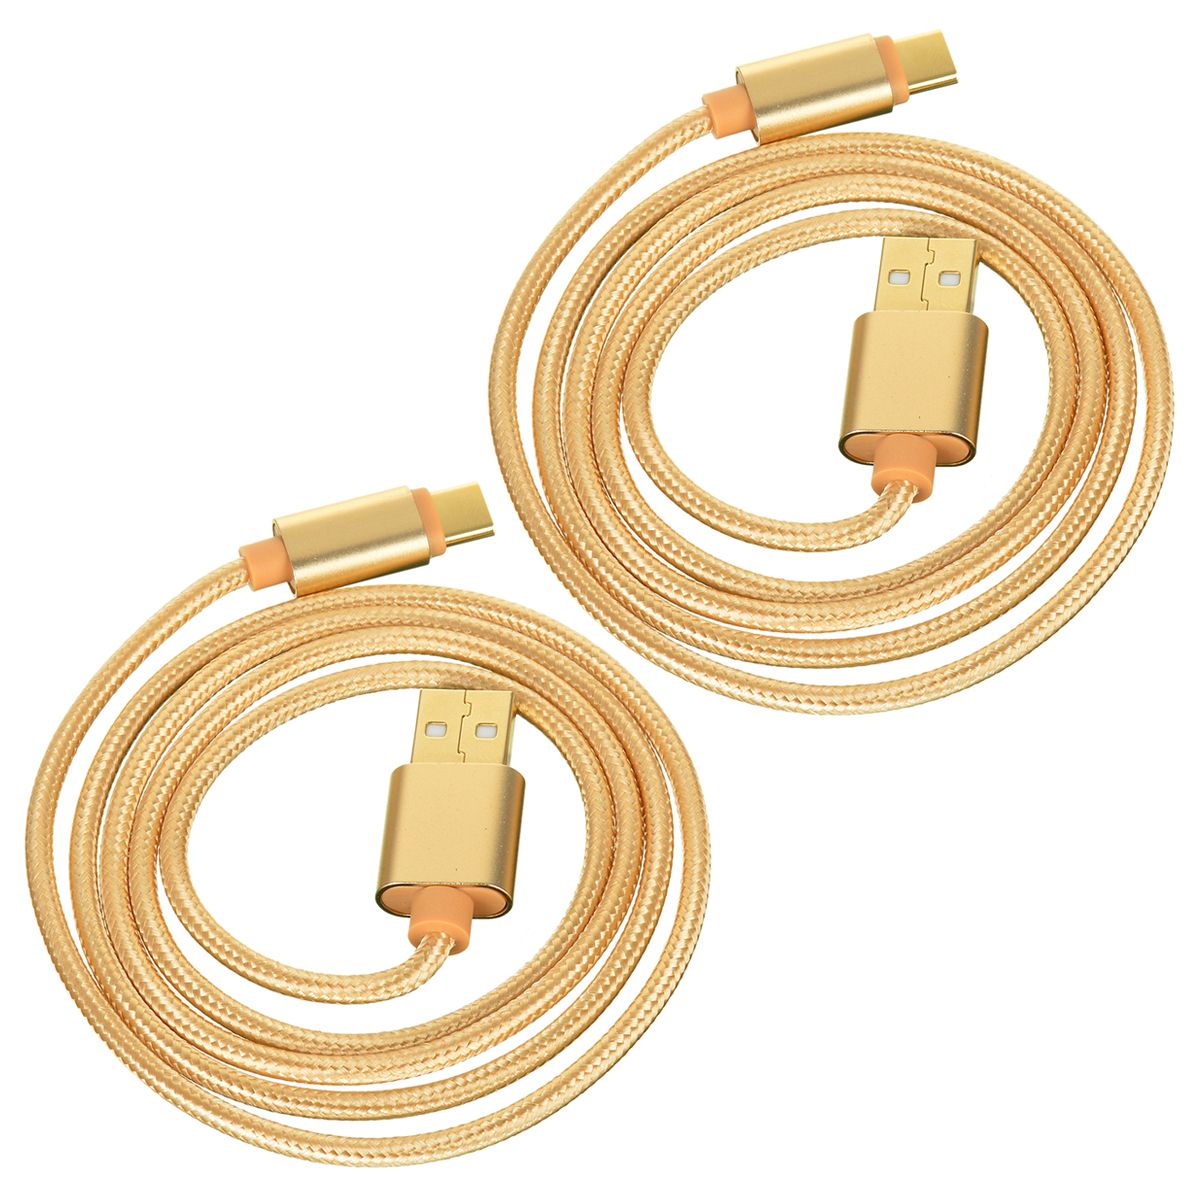 USB 3.1 Type C Braided Data & Charging Cable - Golden (1m / 2PCS)